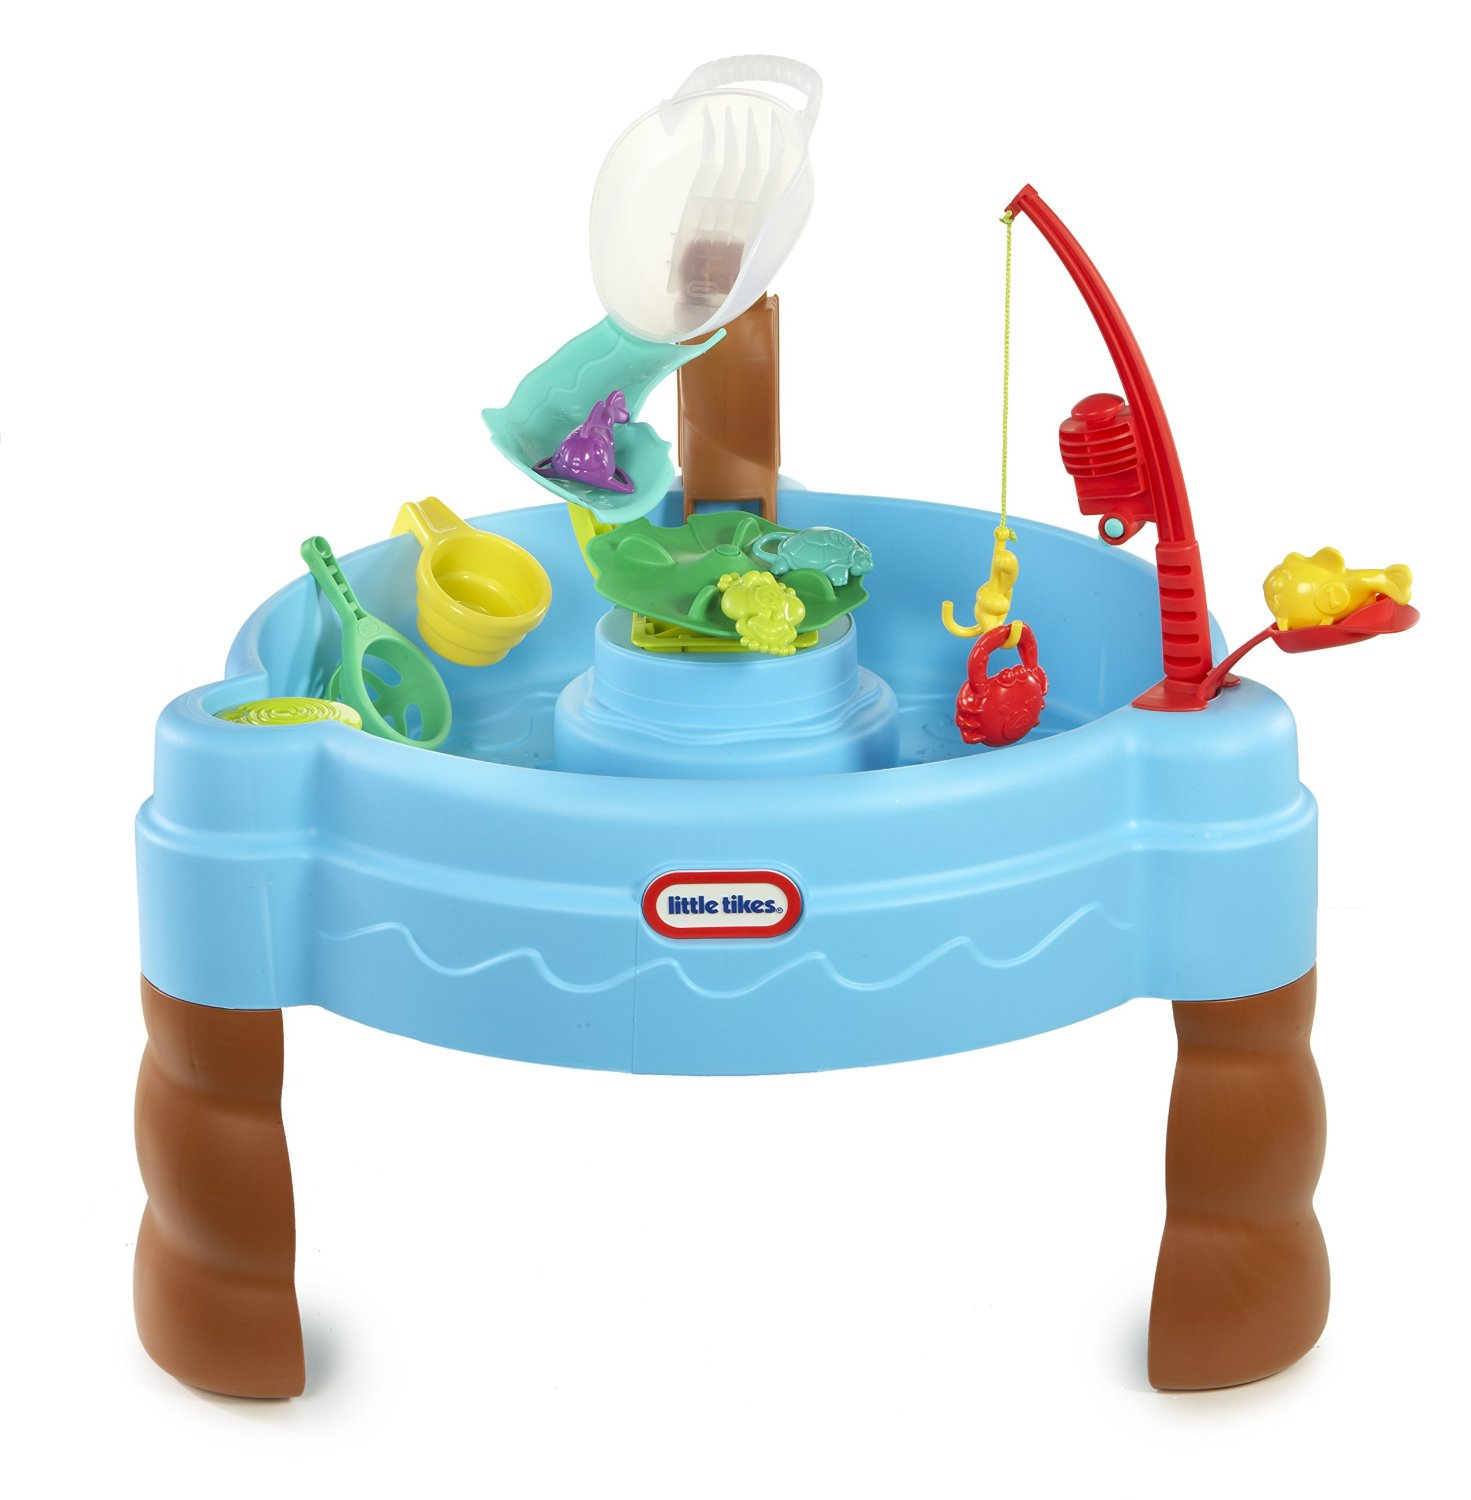 Little tikes fish n splash water table best educational for Fisher price fish bowl